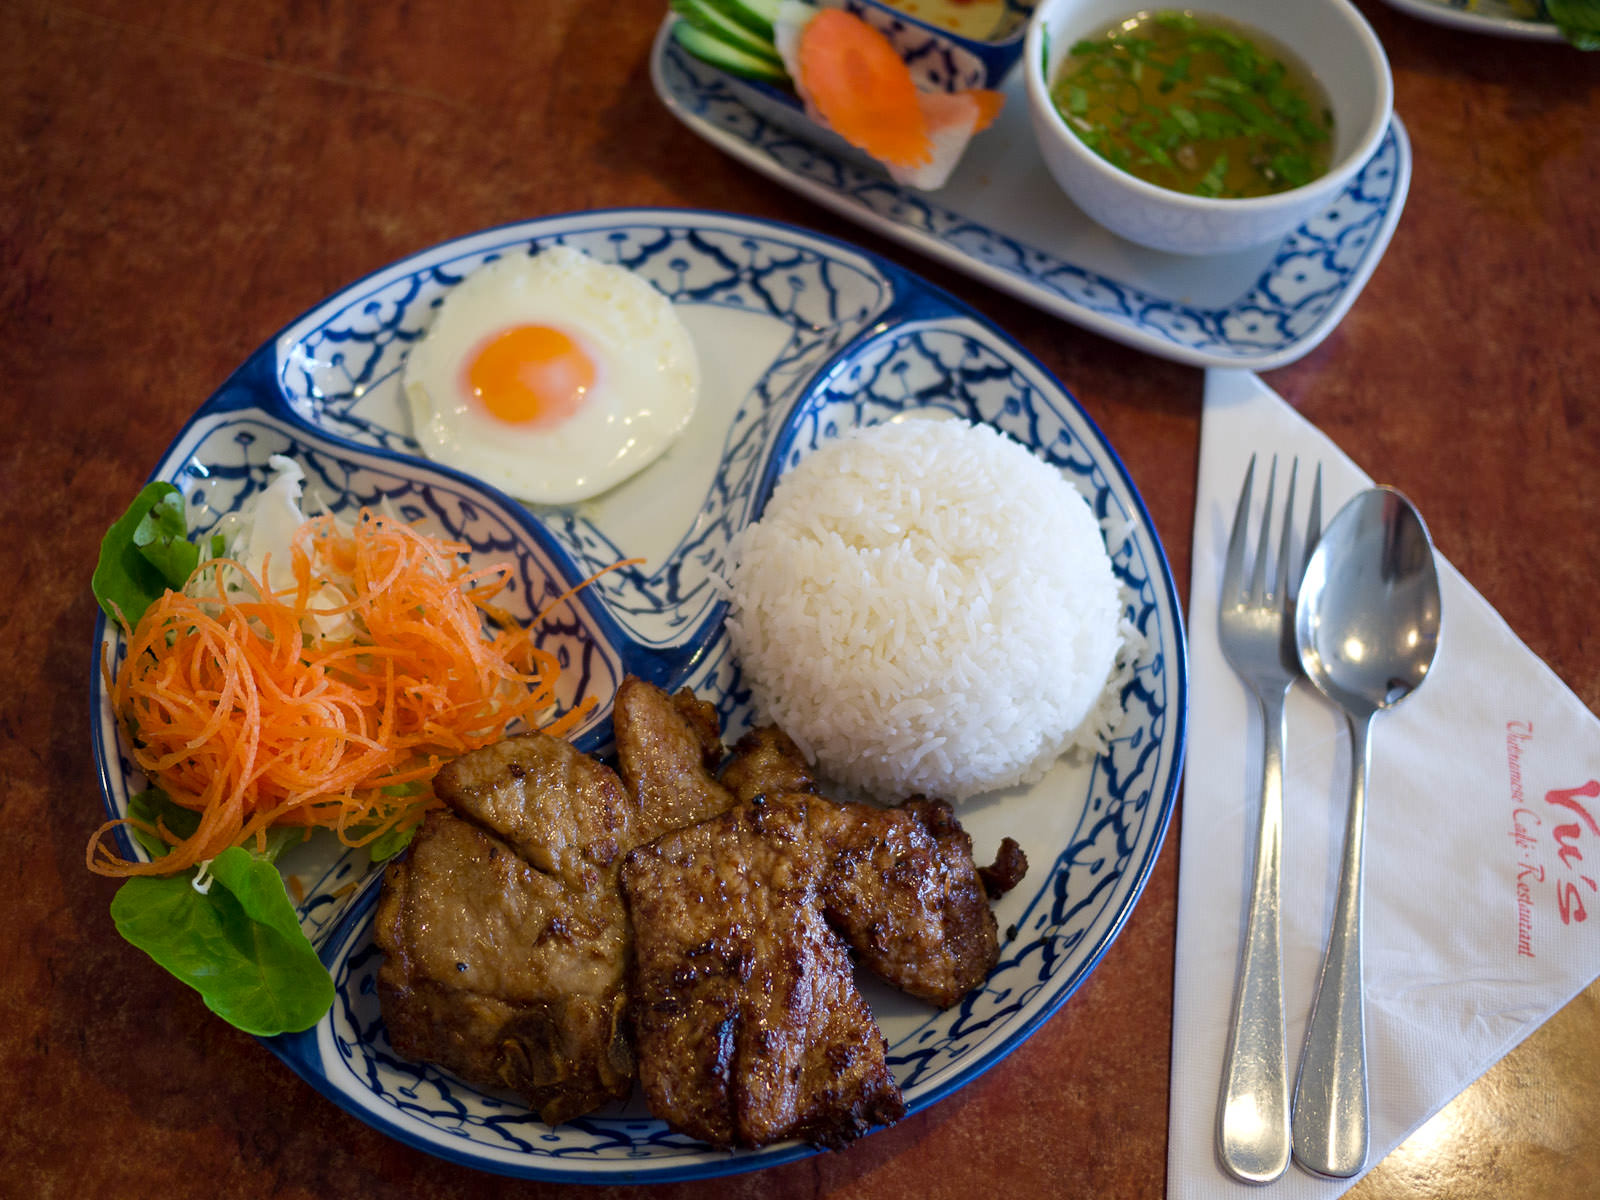 Com suong (Charcoal grilled pork chop, fried egg, rice and soup - AU$13.50)